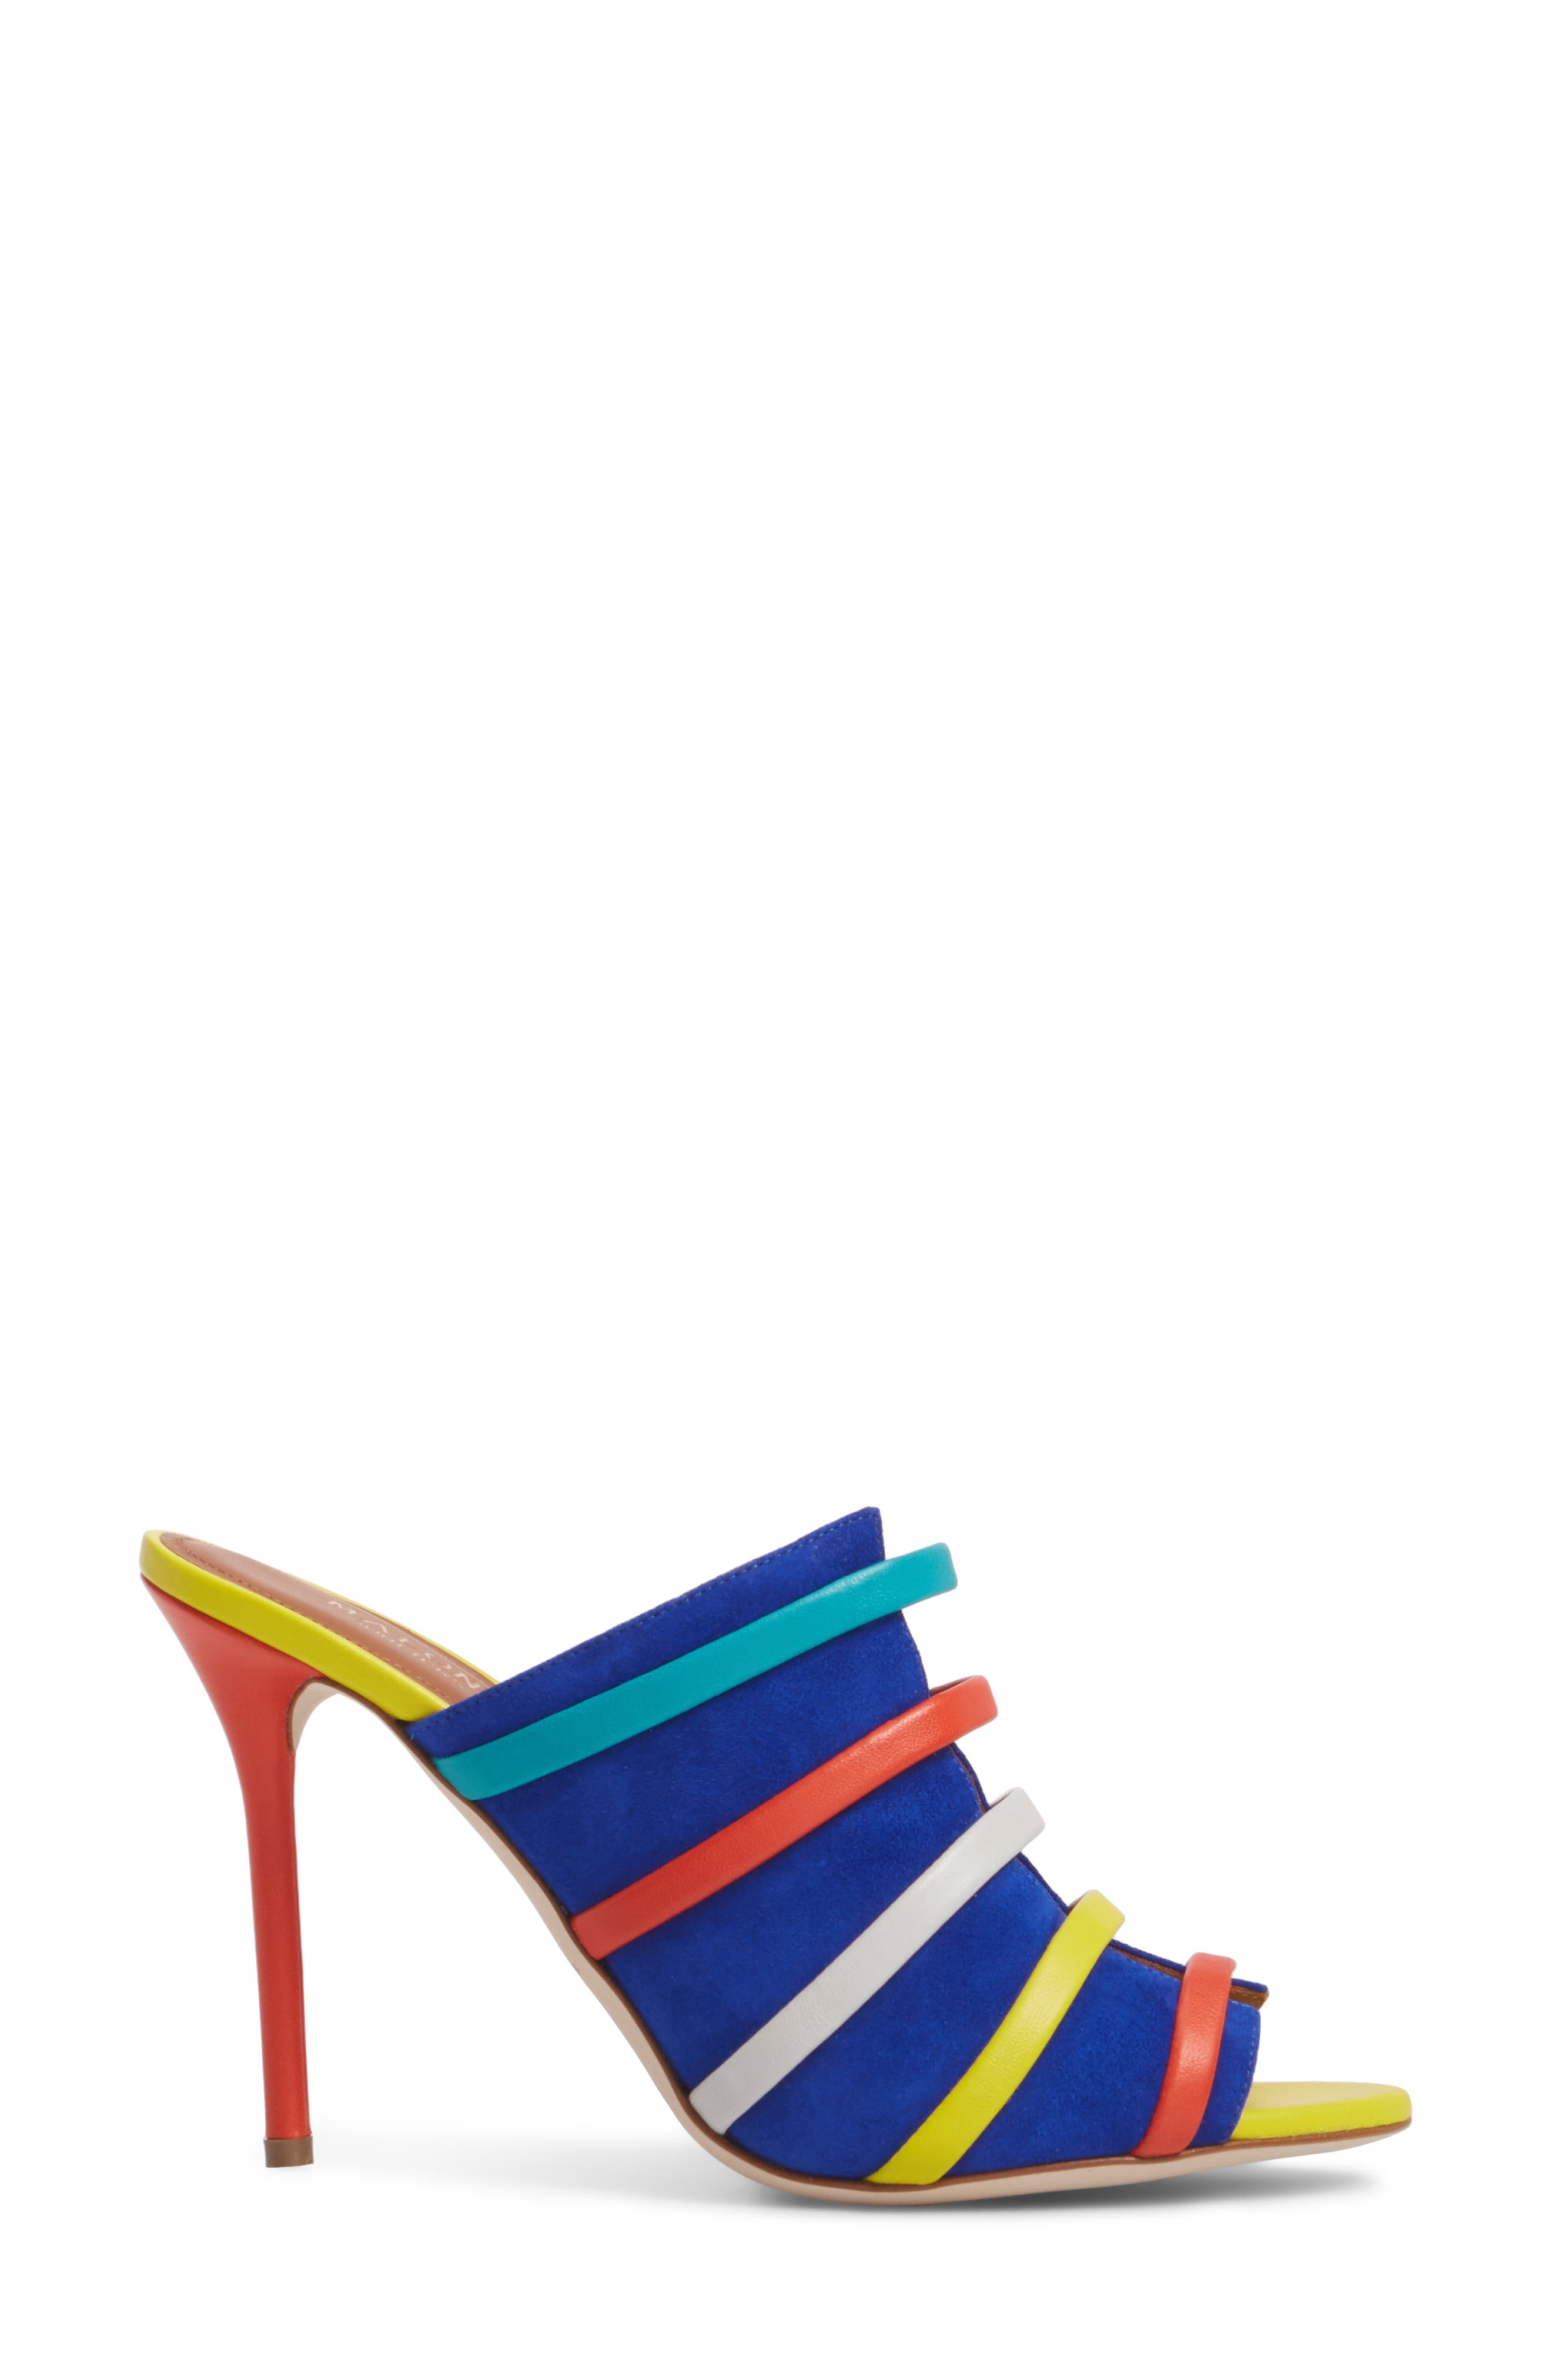 Zoe Banded Mule,                             Alternate thumbnail 3, color,                             Electric Blue/ Flame/ Yellow